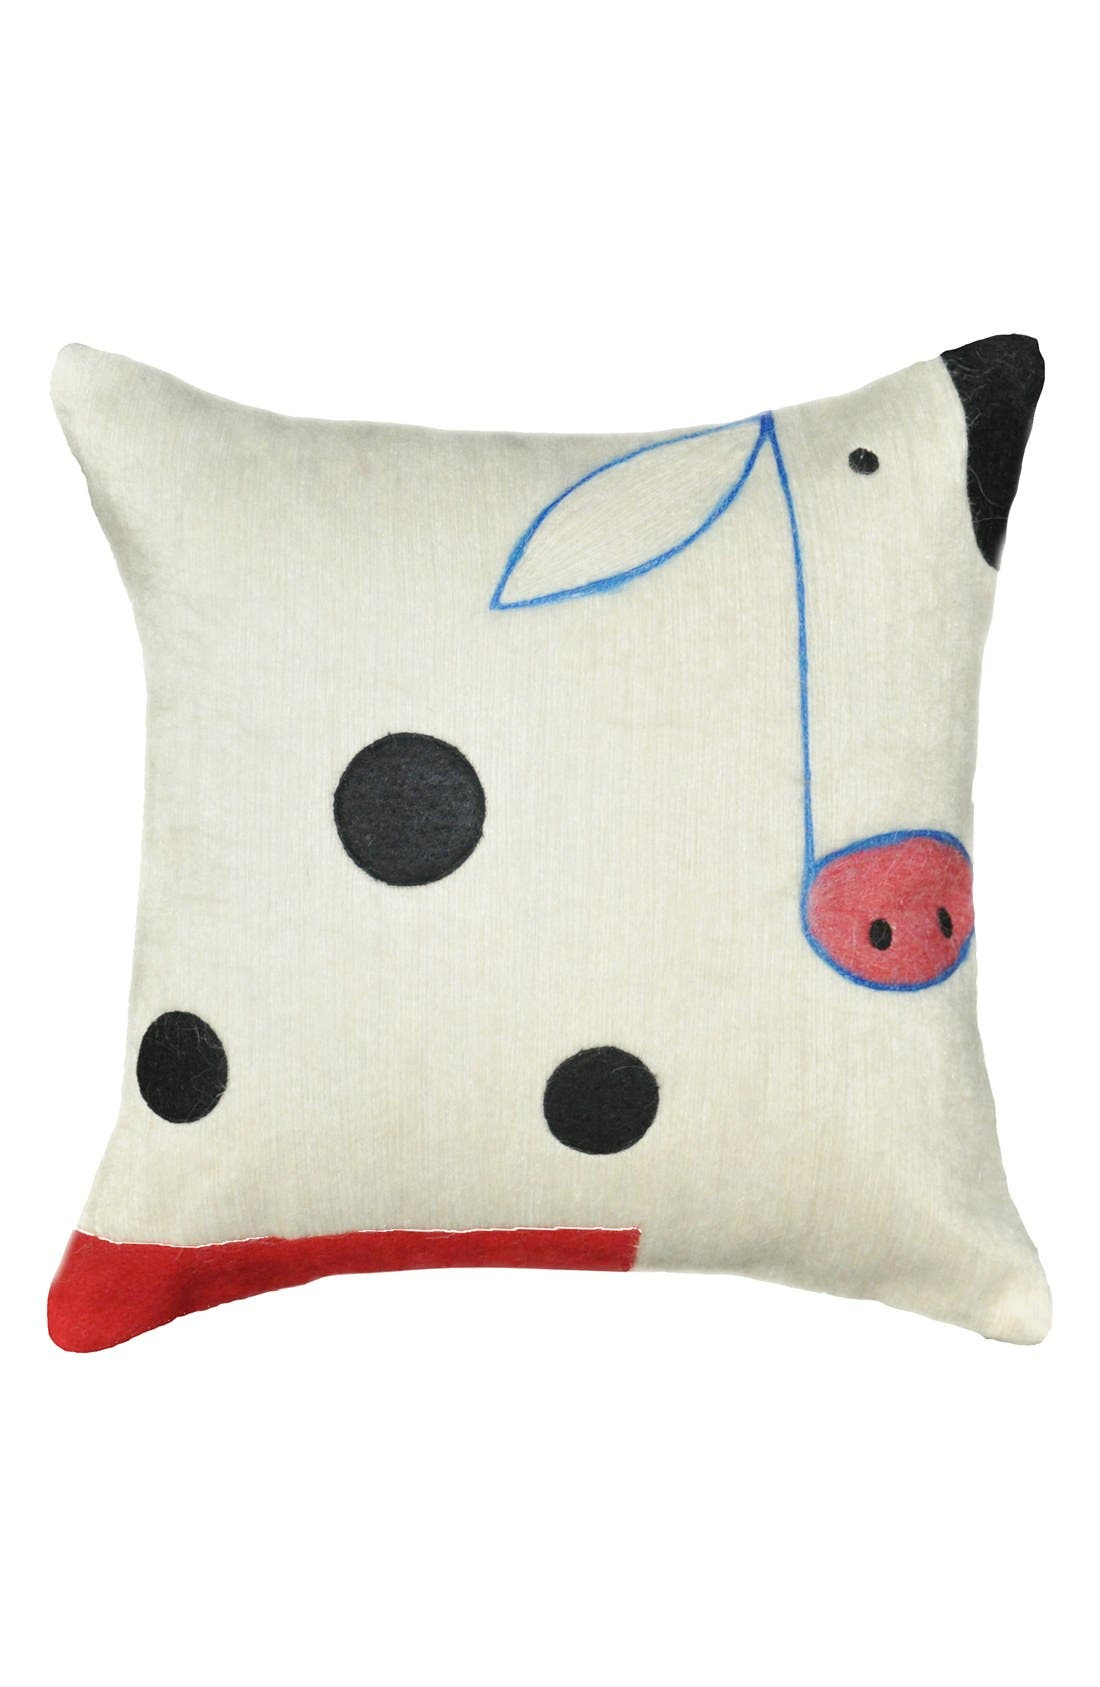 Main Image - Amity Home 'Cow' Accent Pillow